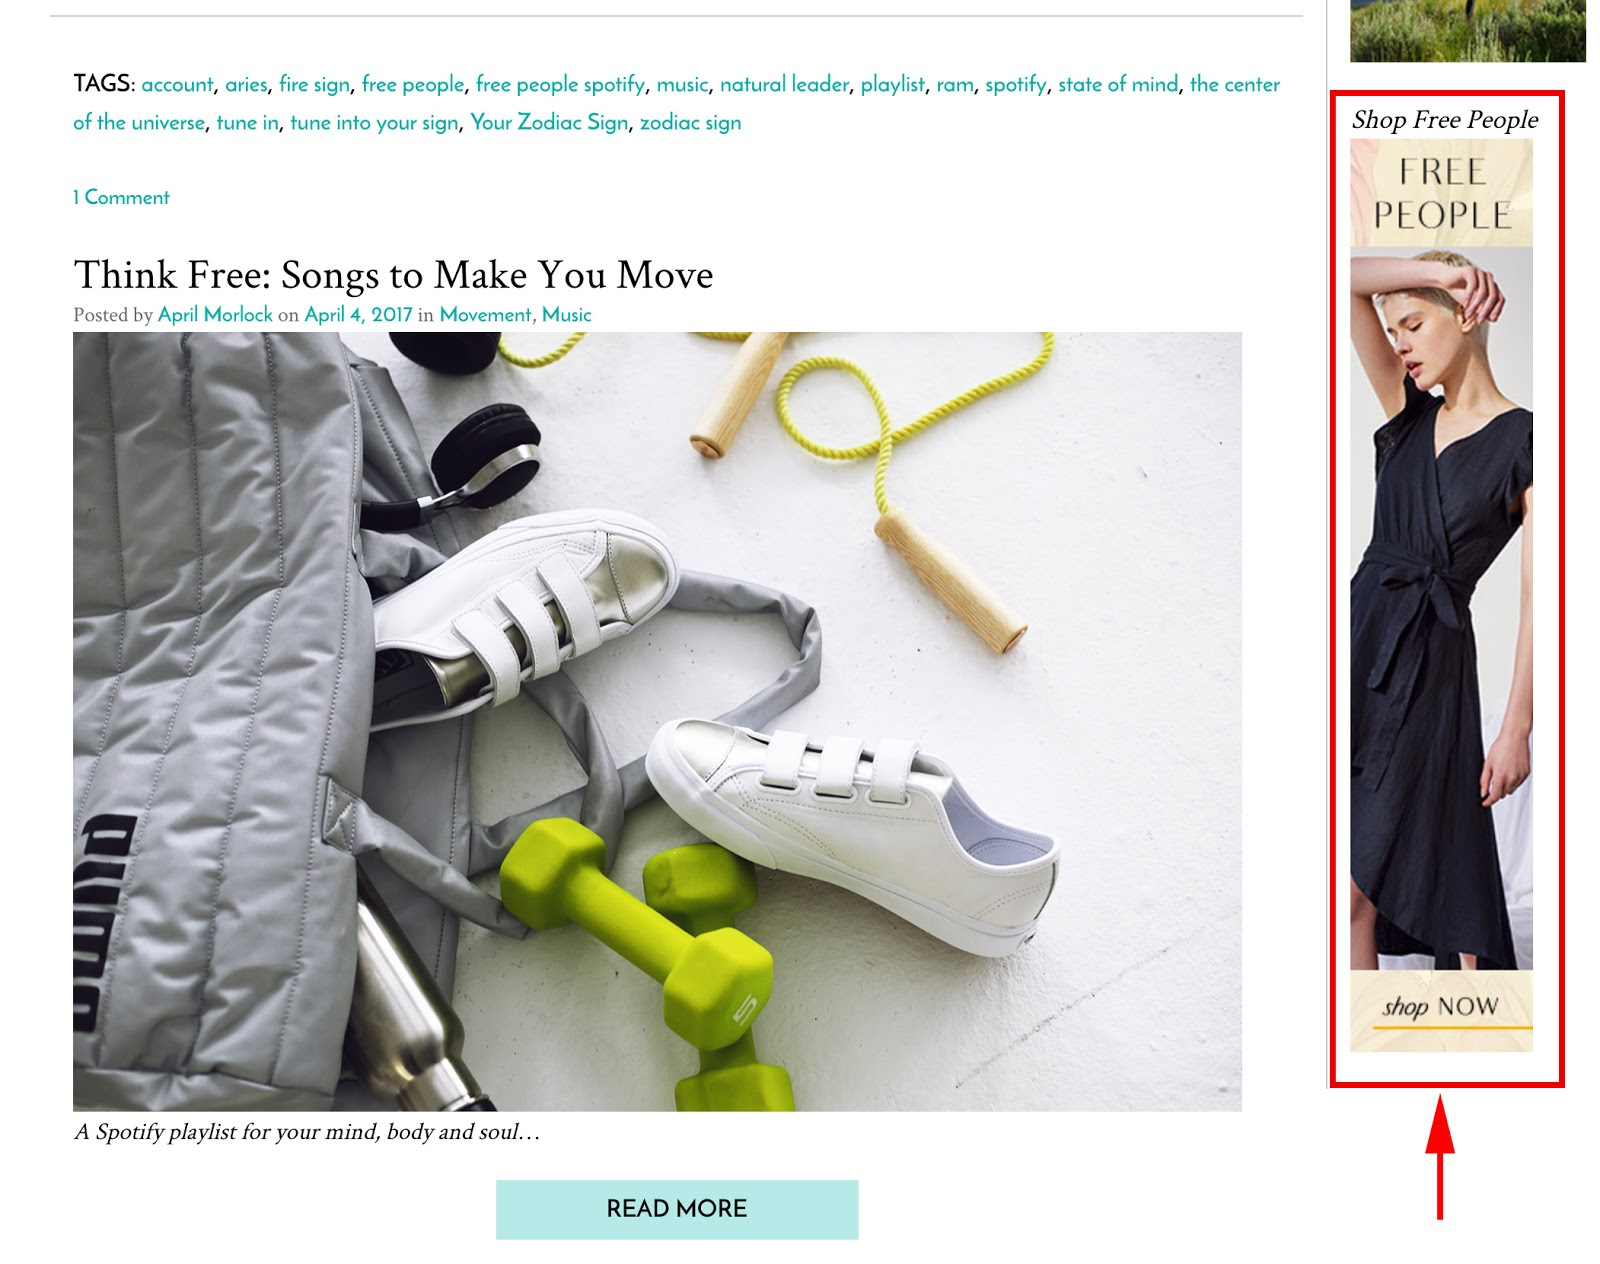 Image of the Free People's blog high-converting funnel